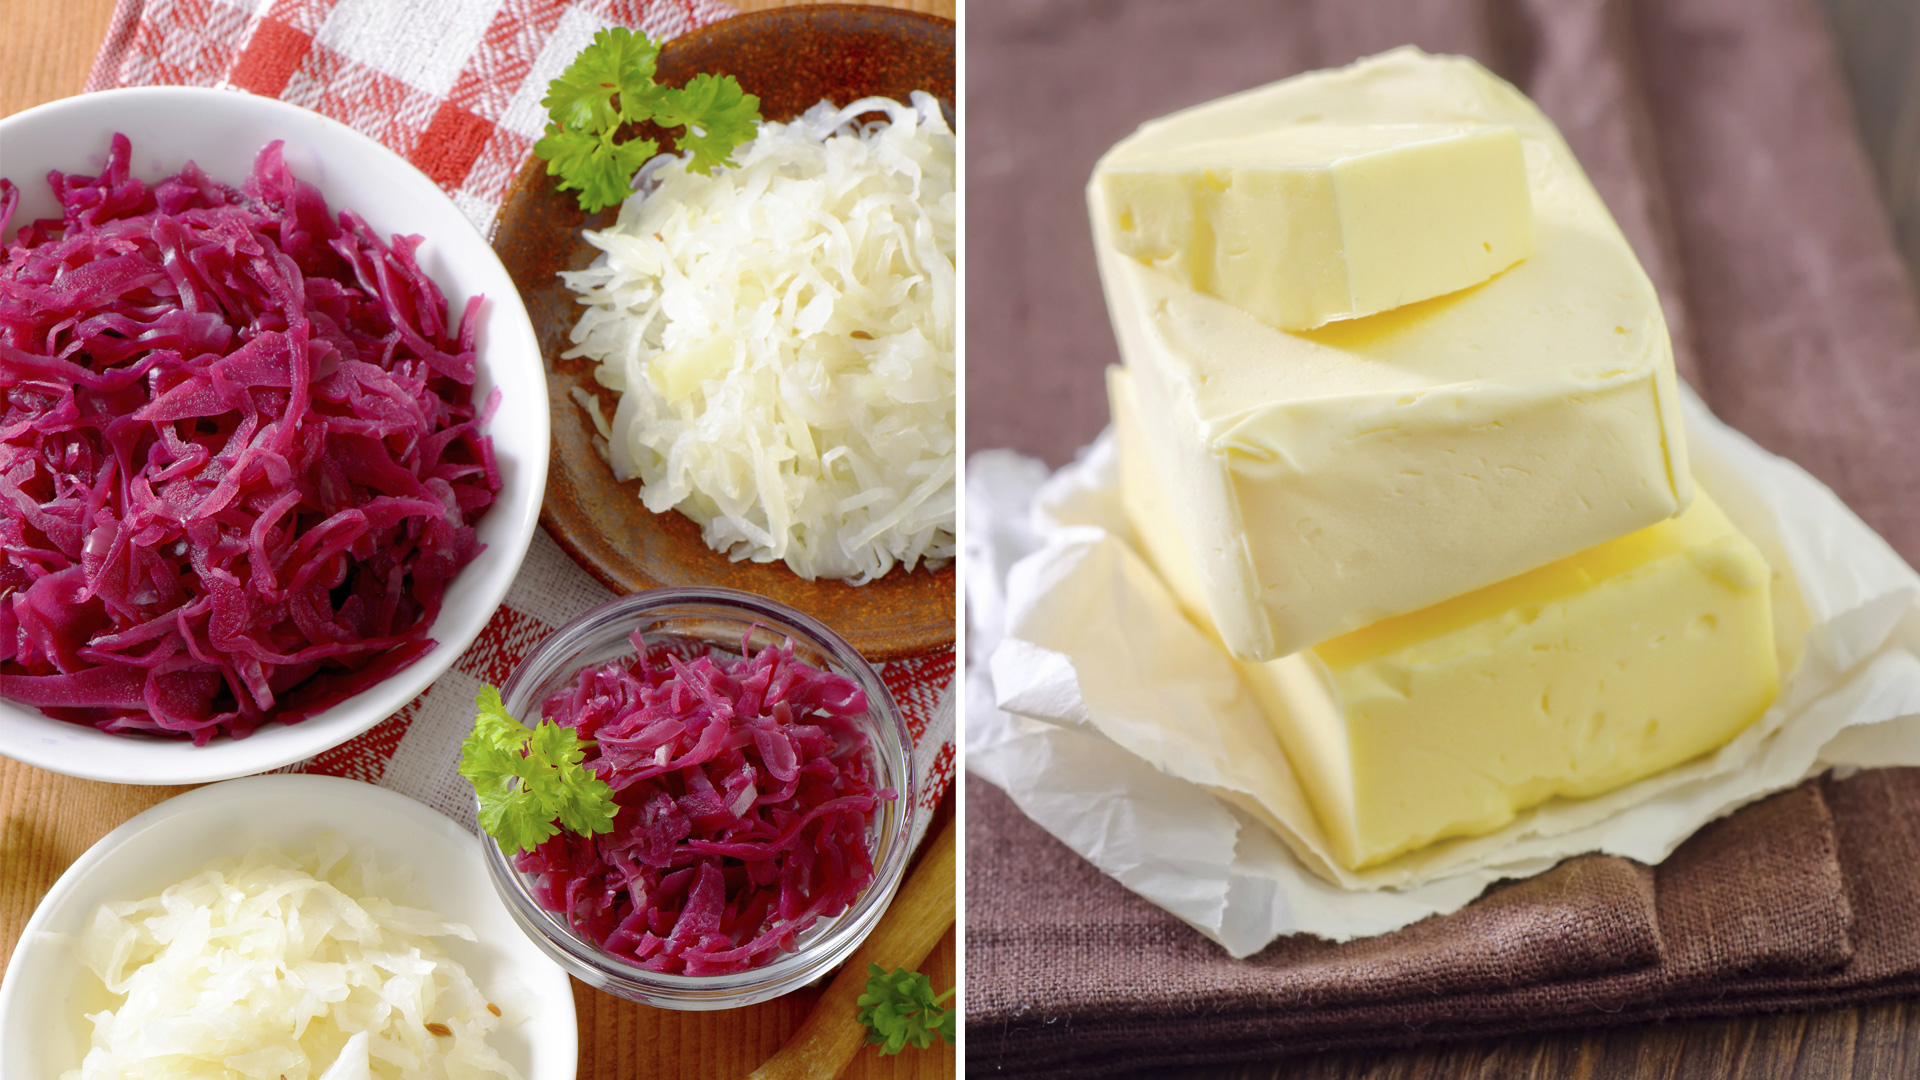 sauerkraut and butter